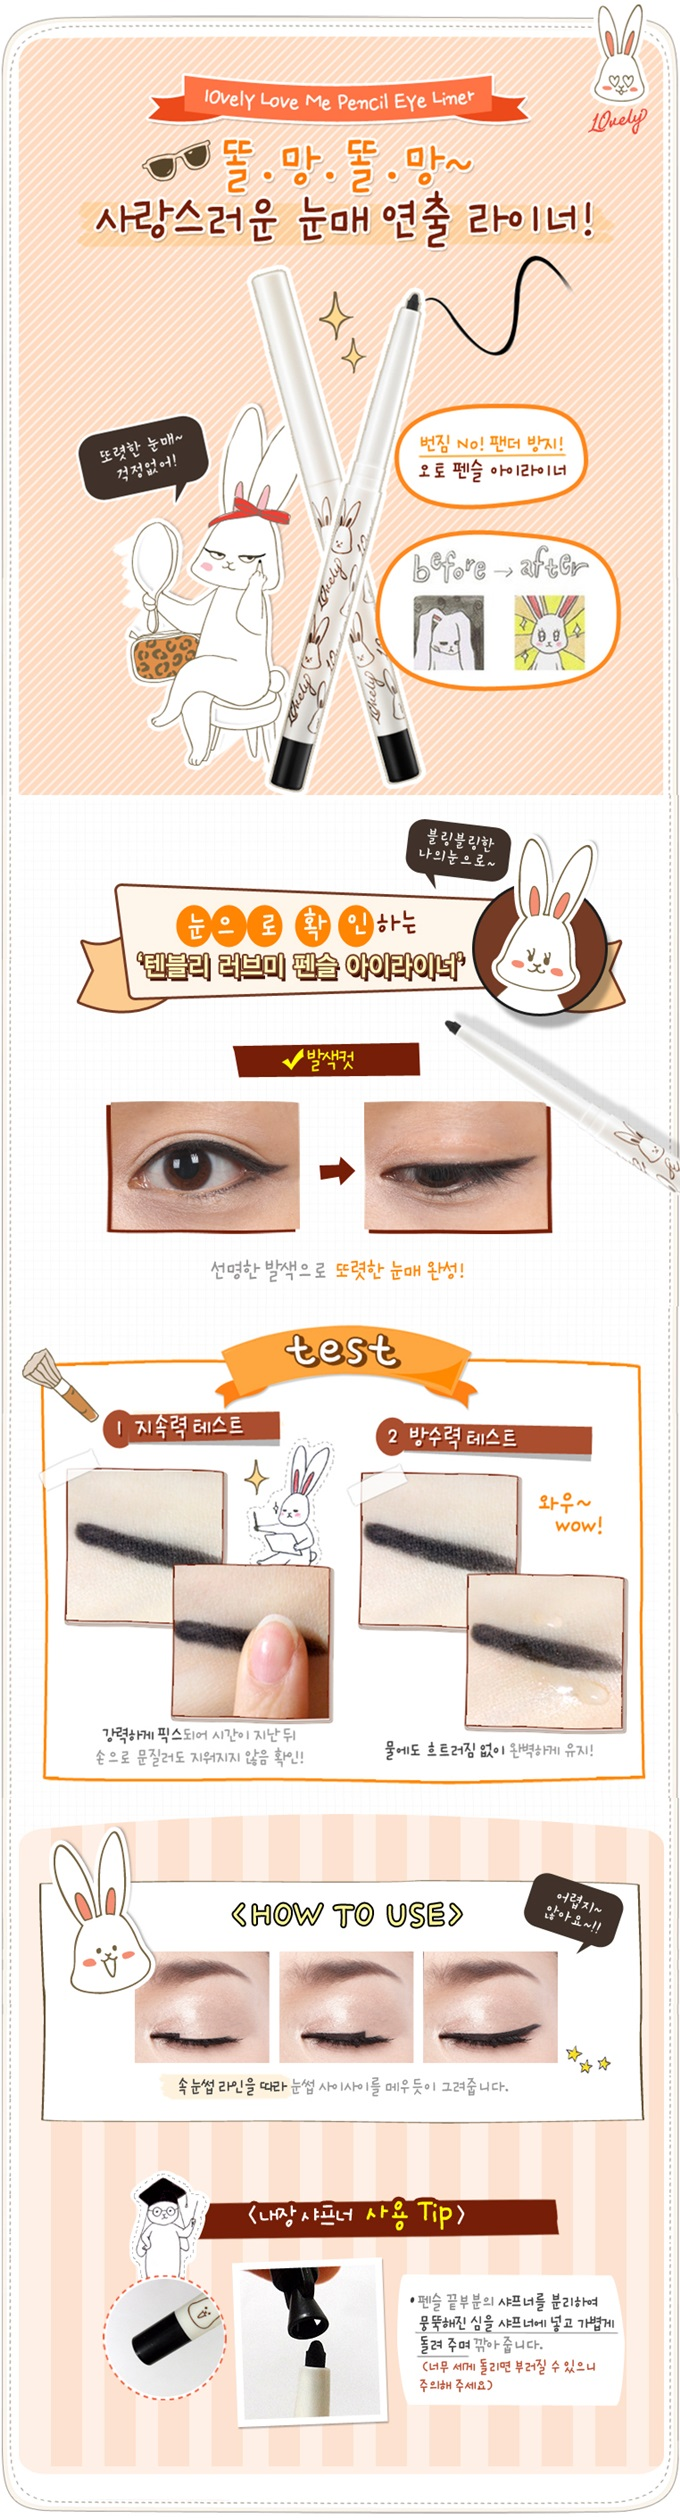 mizon-10vely-love-me-eye-liner.jpg